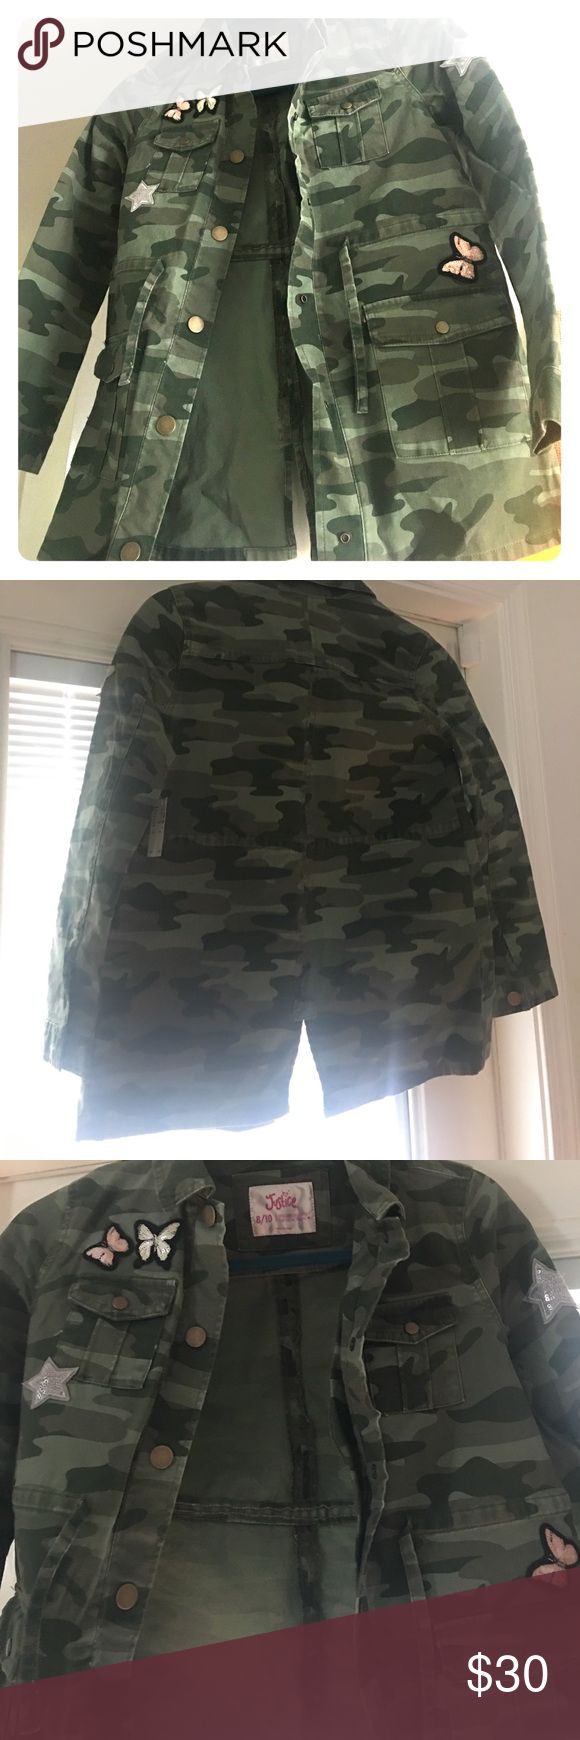 Justice army fatigue jacket Army fatigue jacket with patches.   Girls size 8/10. Snap button down, drawstring waist, cargo pockets . New with tags Justice Jackets & Coats